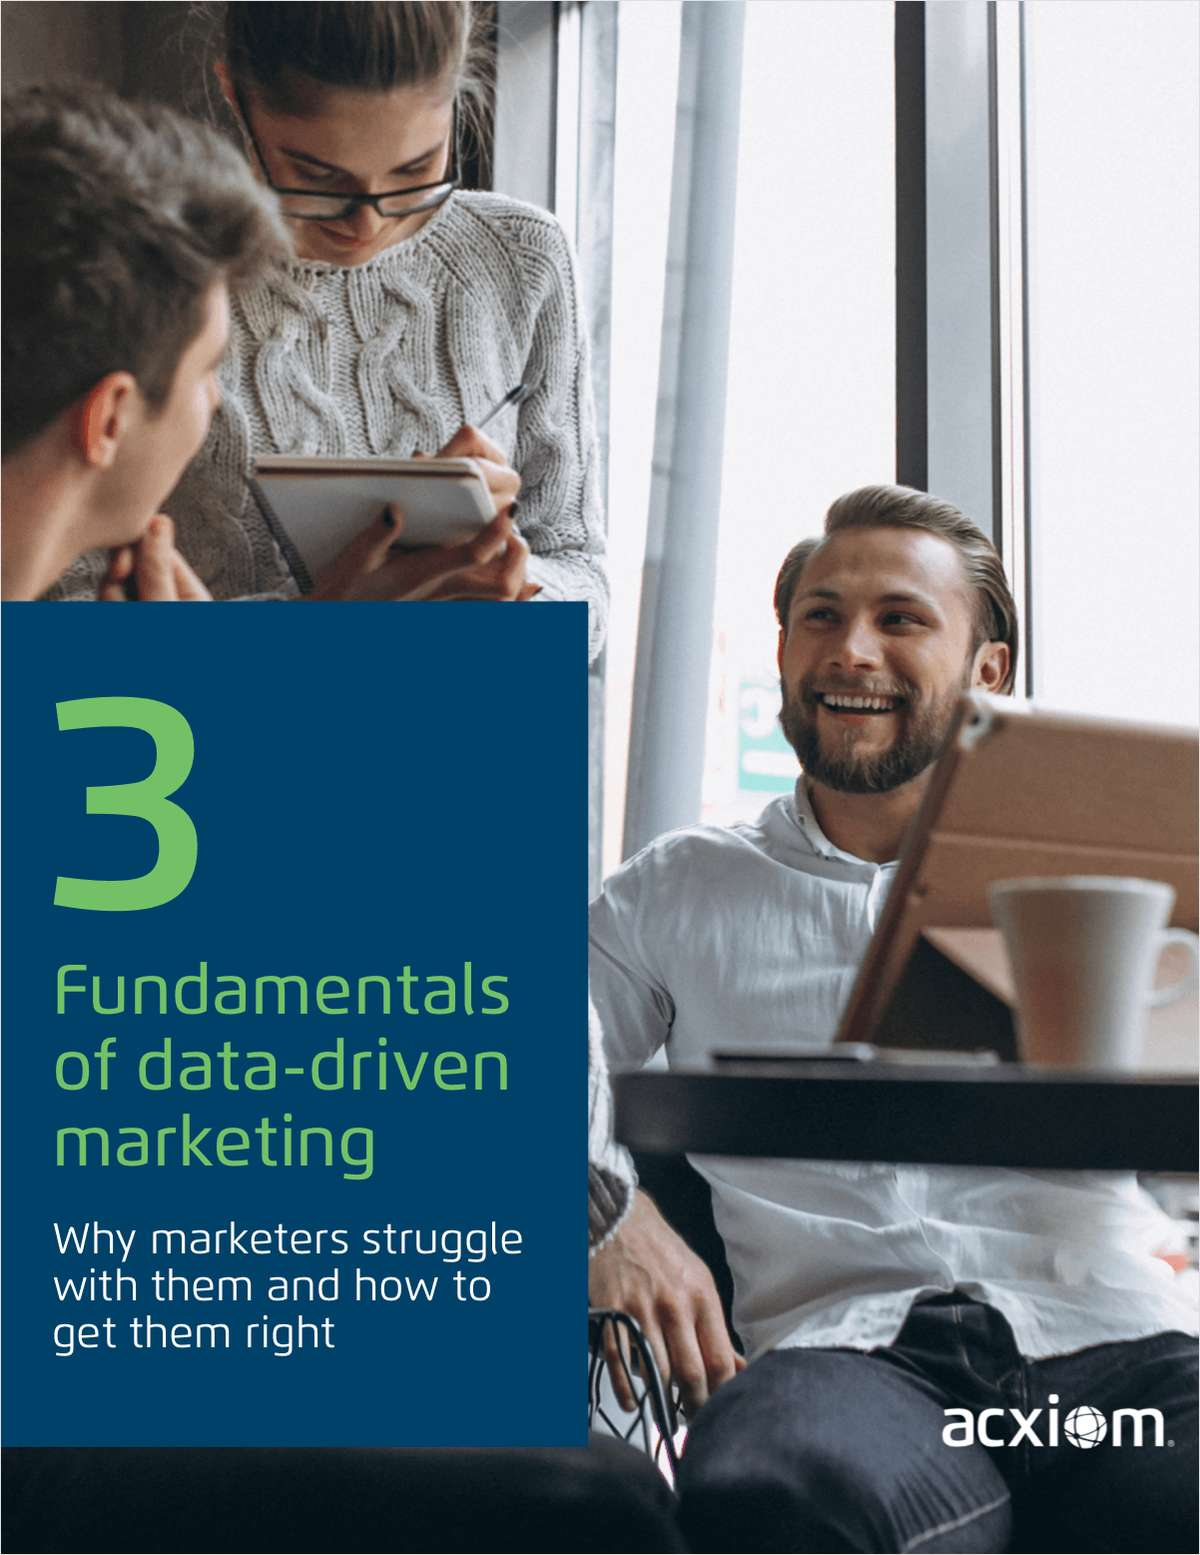 3 Fundamentals of Data-Driven Marketing